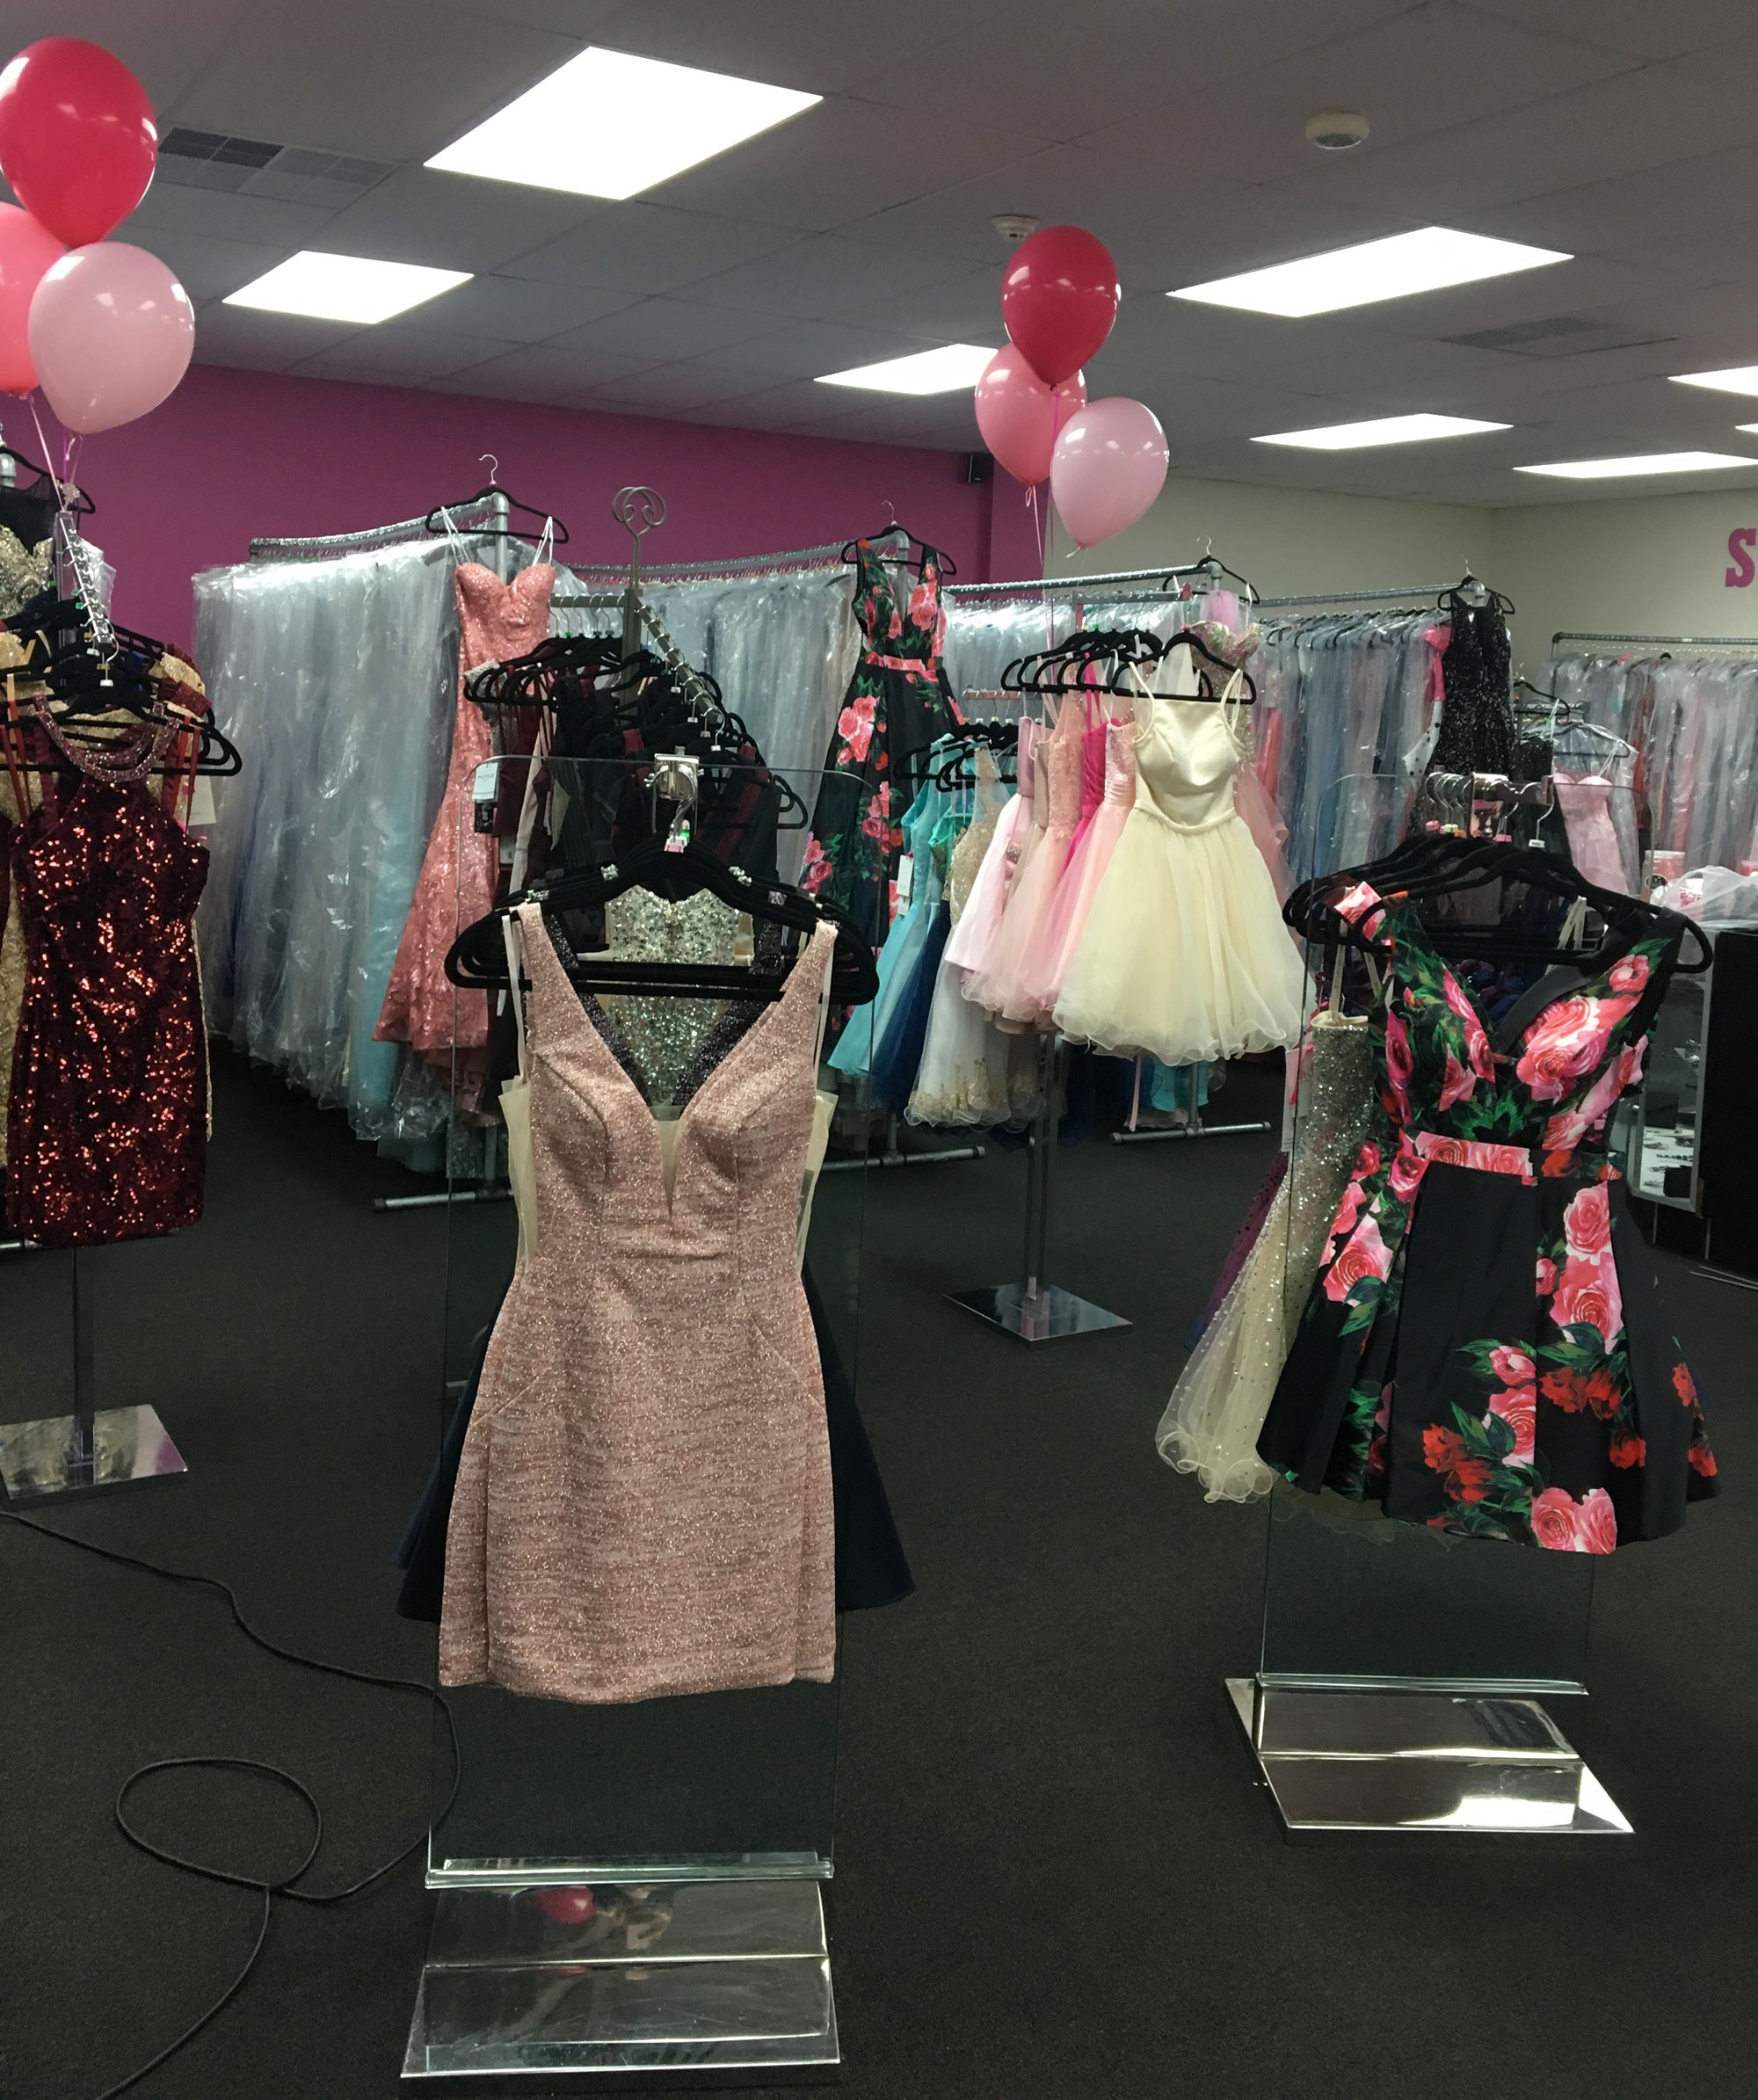 Ball Gowns and Prom Dresses at RissyRoos.com of Northfield, New Jersey